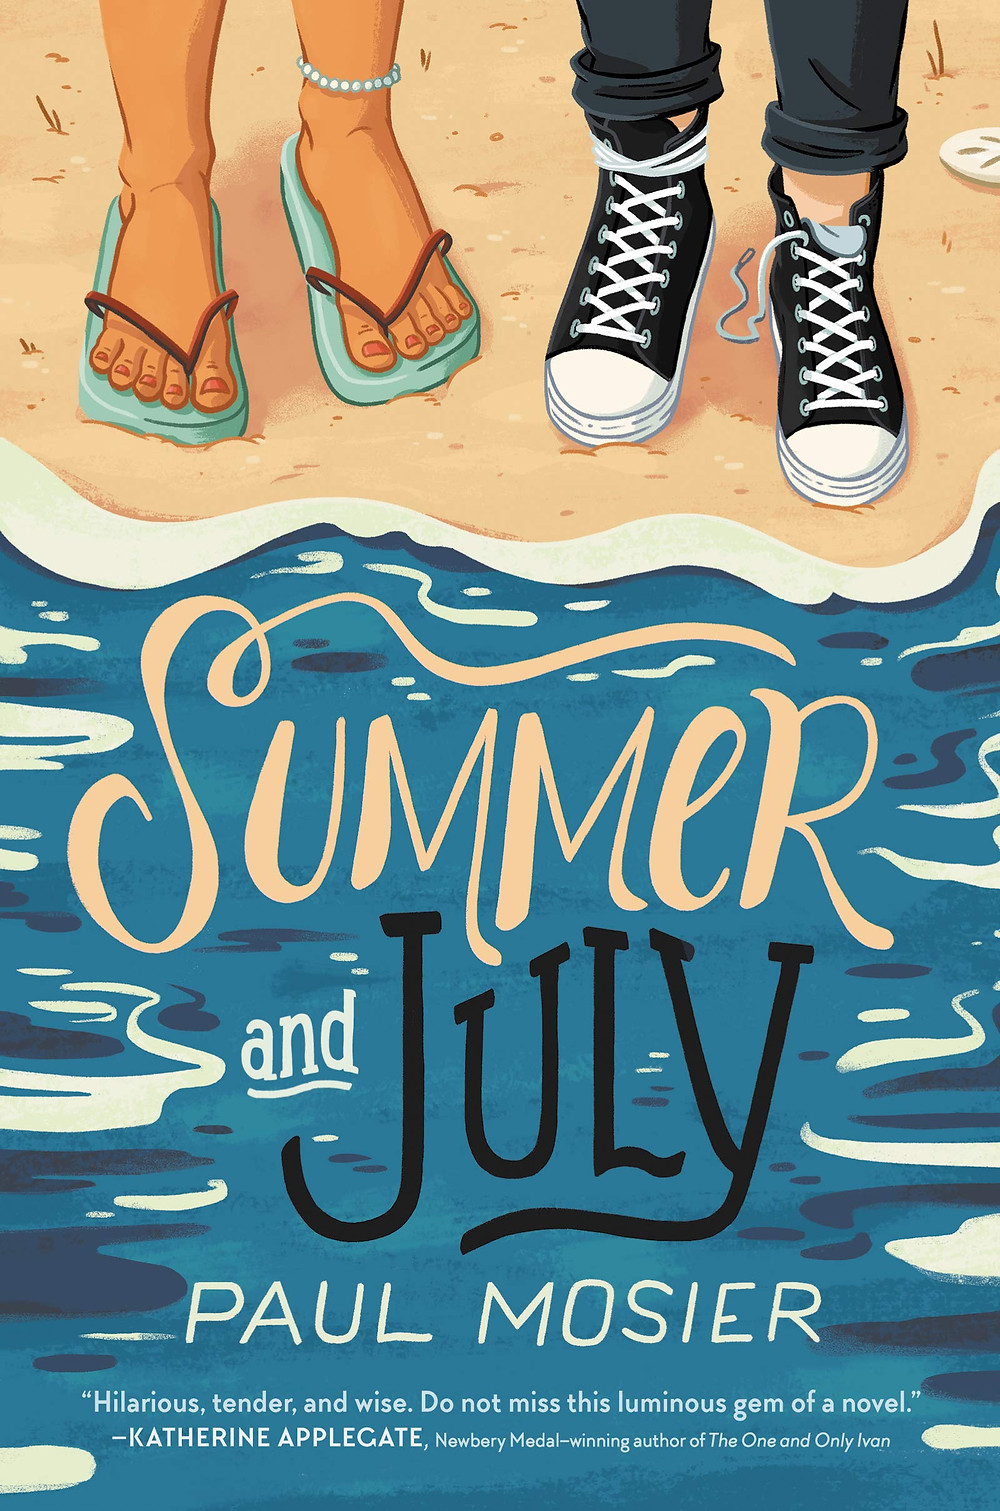 Summer and July by Paul Mosier